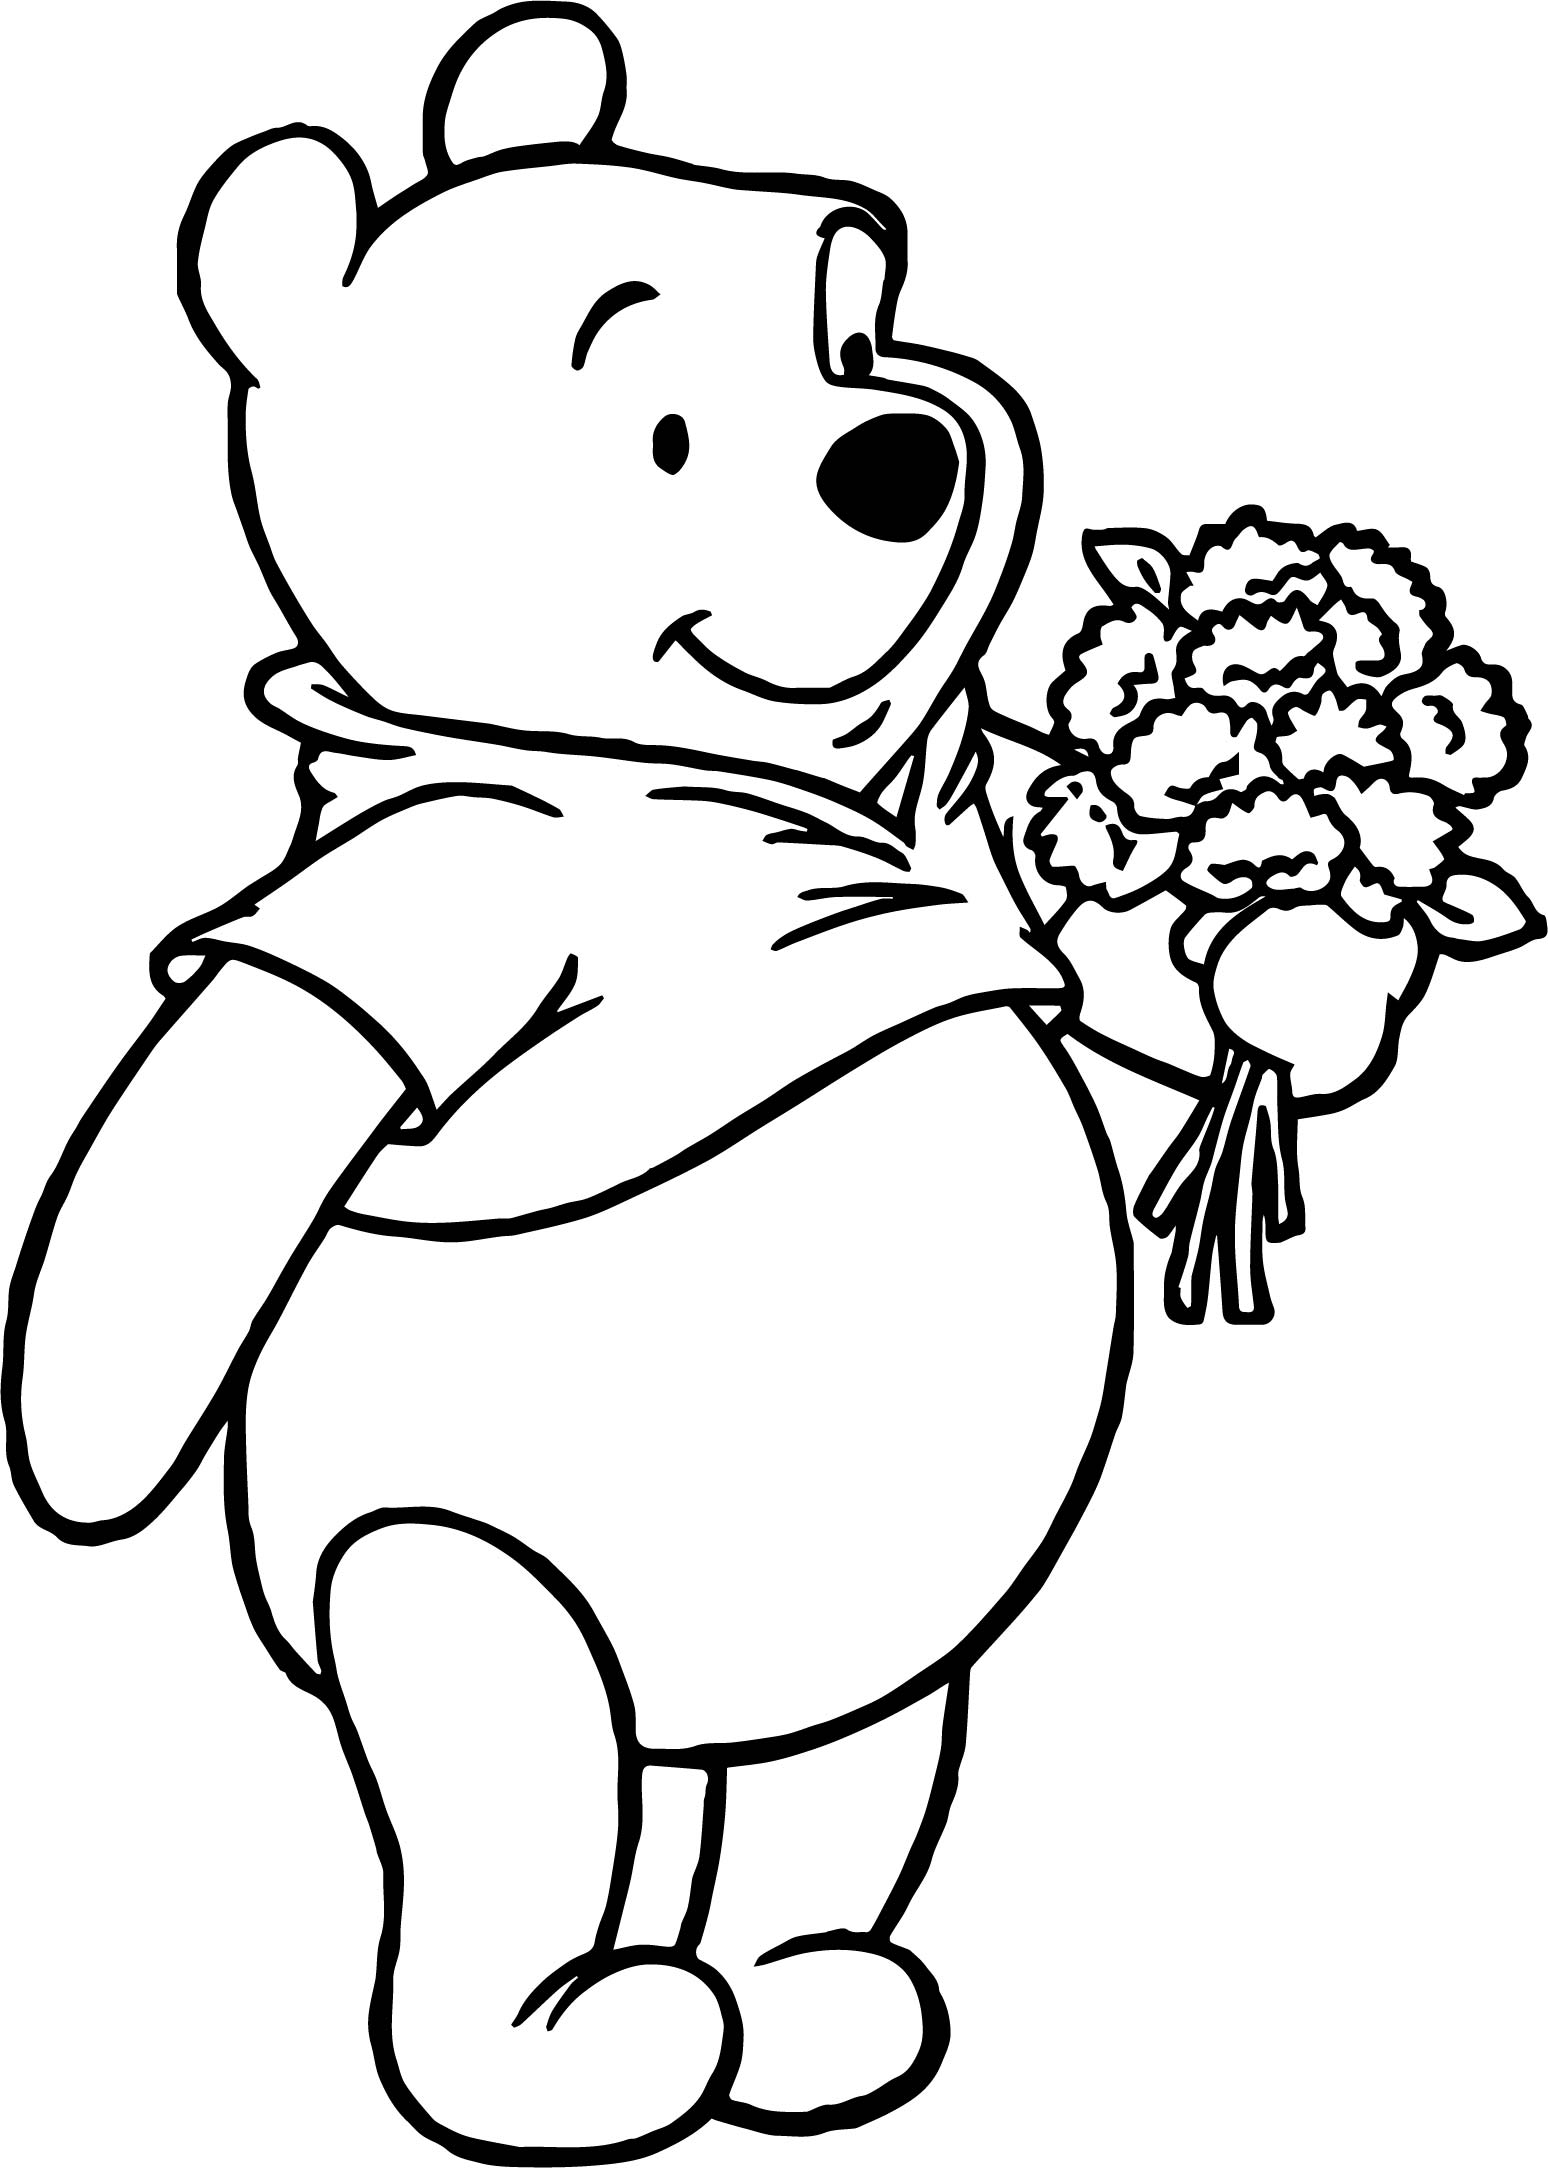 Winnie The Pooh Flower Coloring Page Wecoloringpage